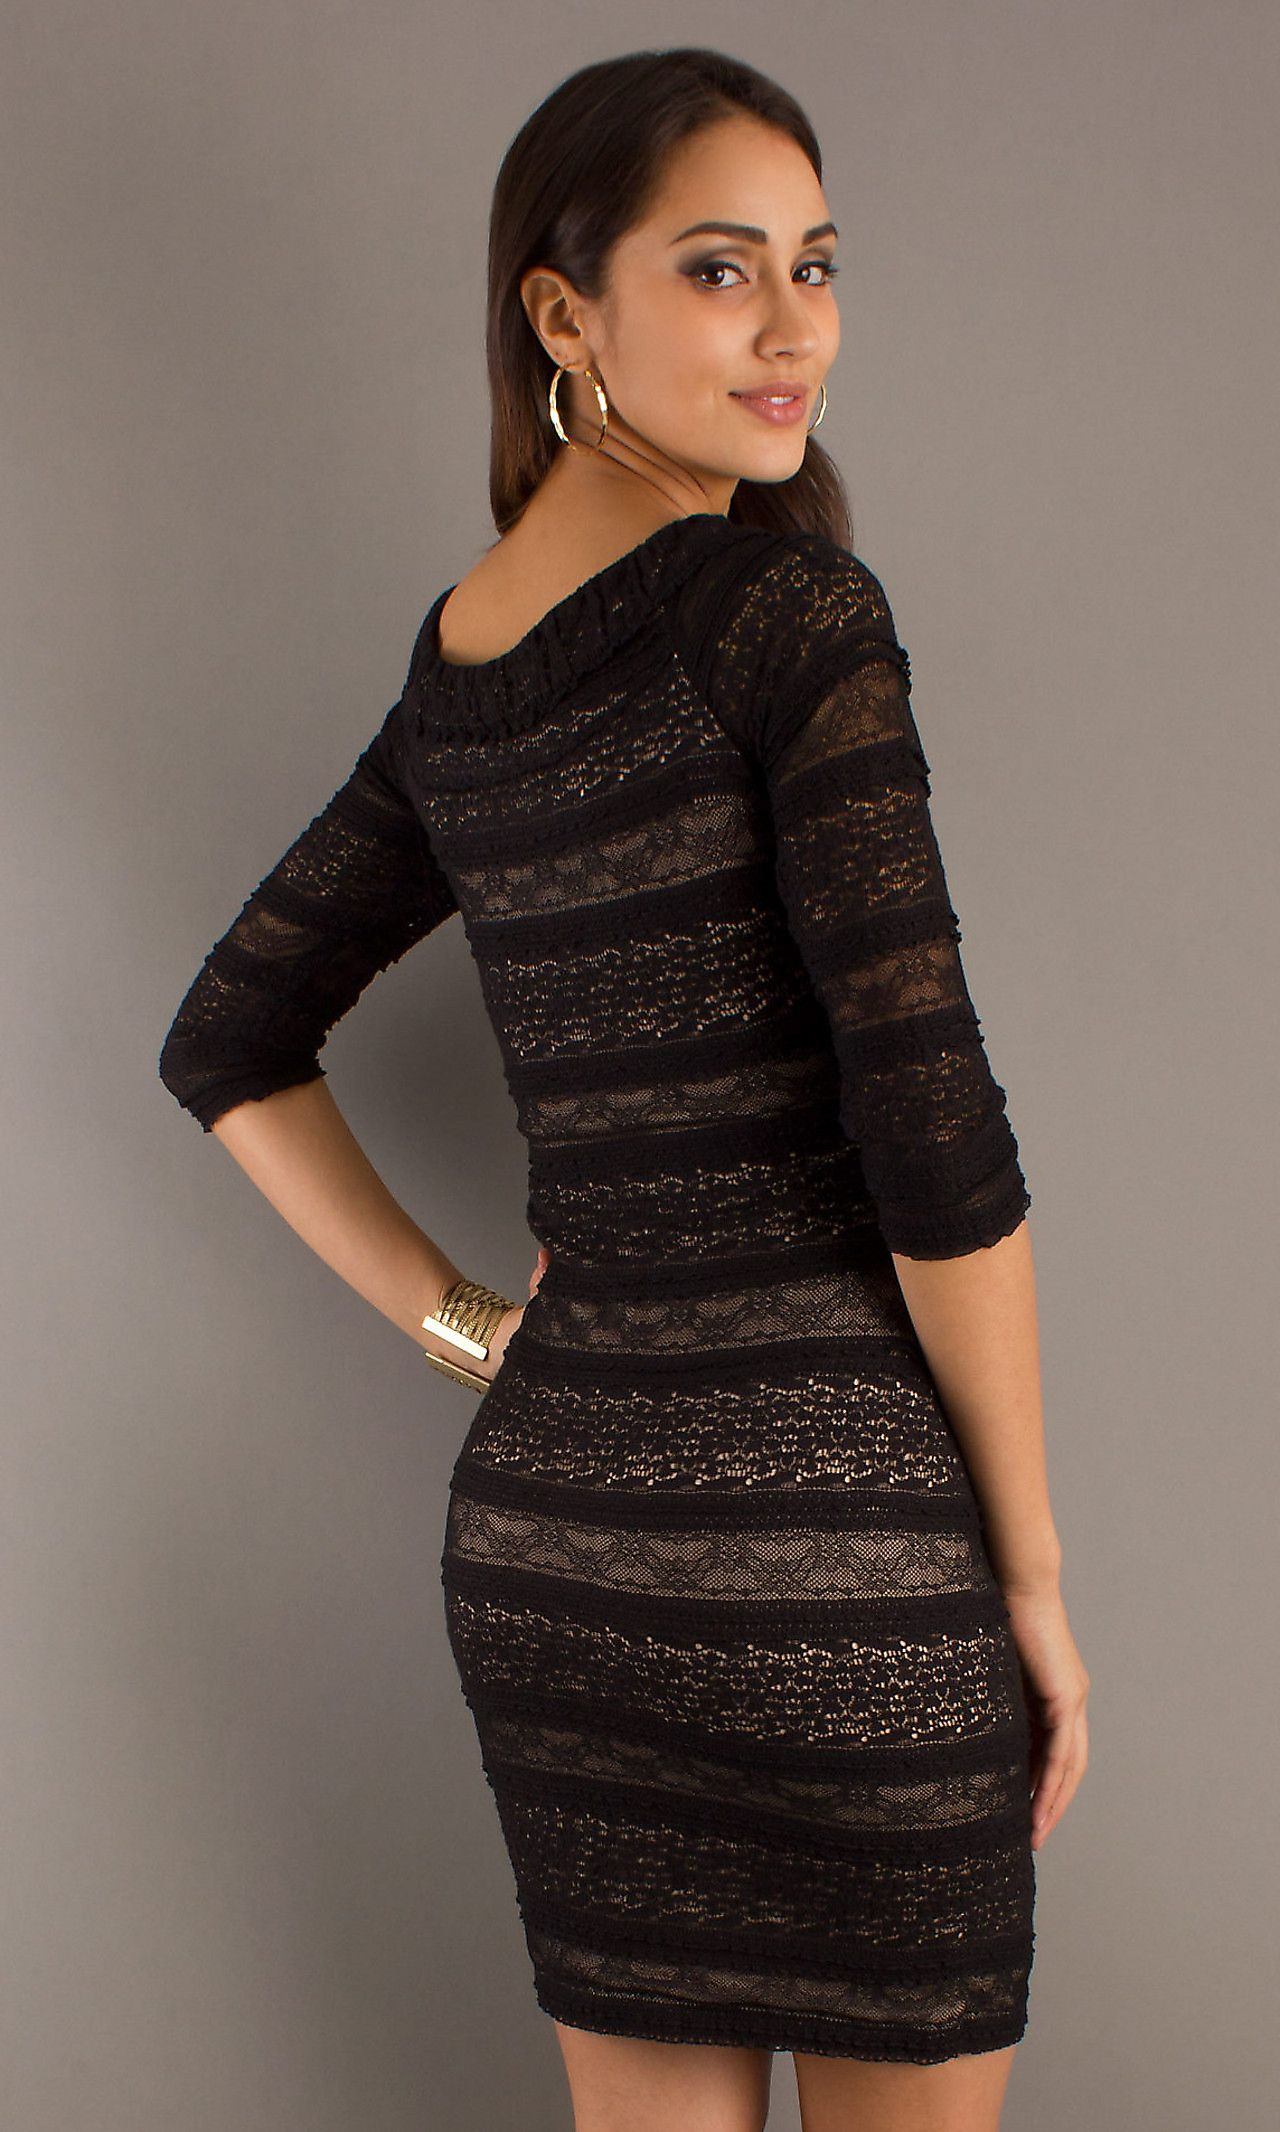 Dress short black dress with 34 length sleeves simply